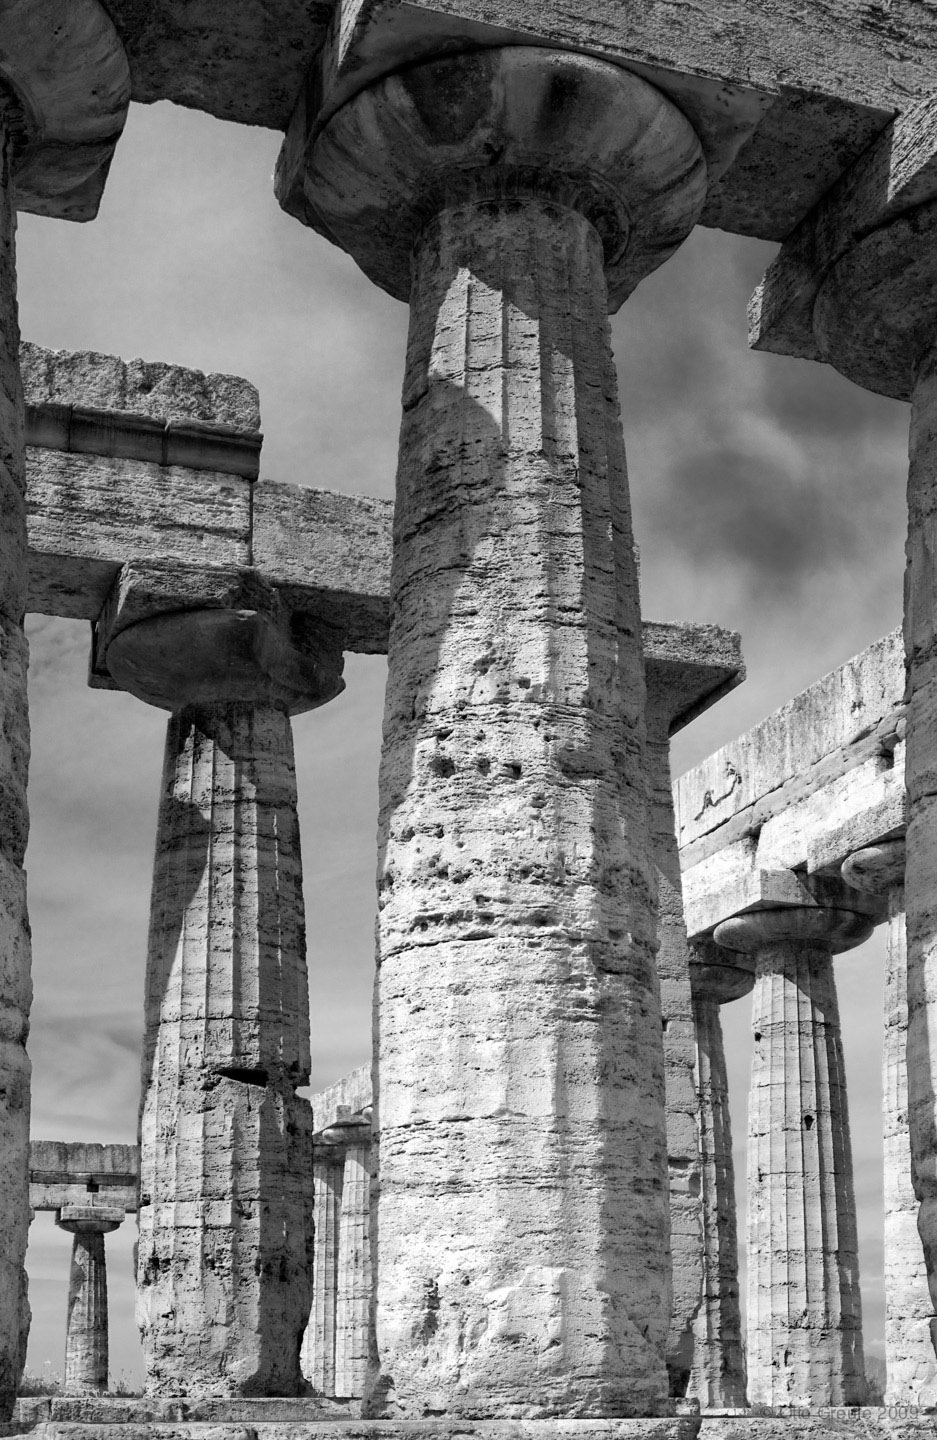 The Temple of Hera I, Basilica, Paestum, Italy.